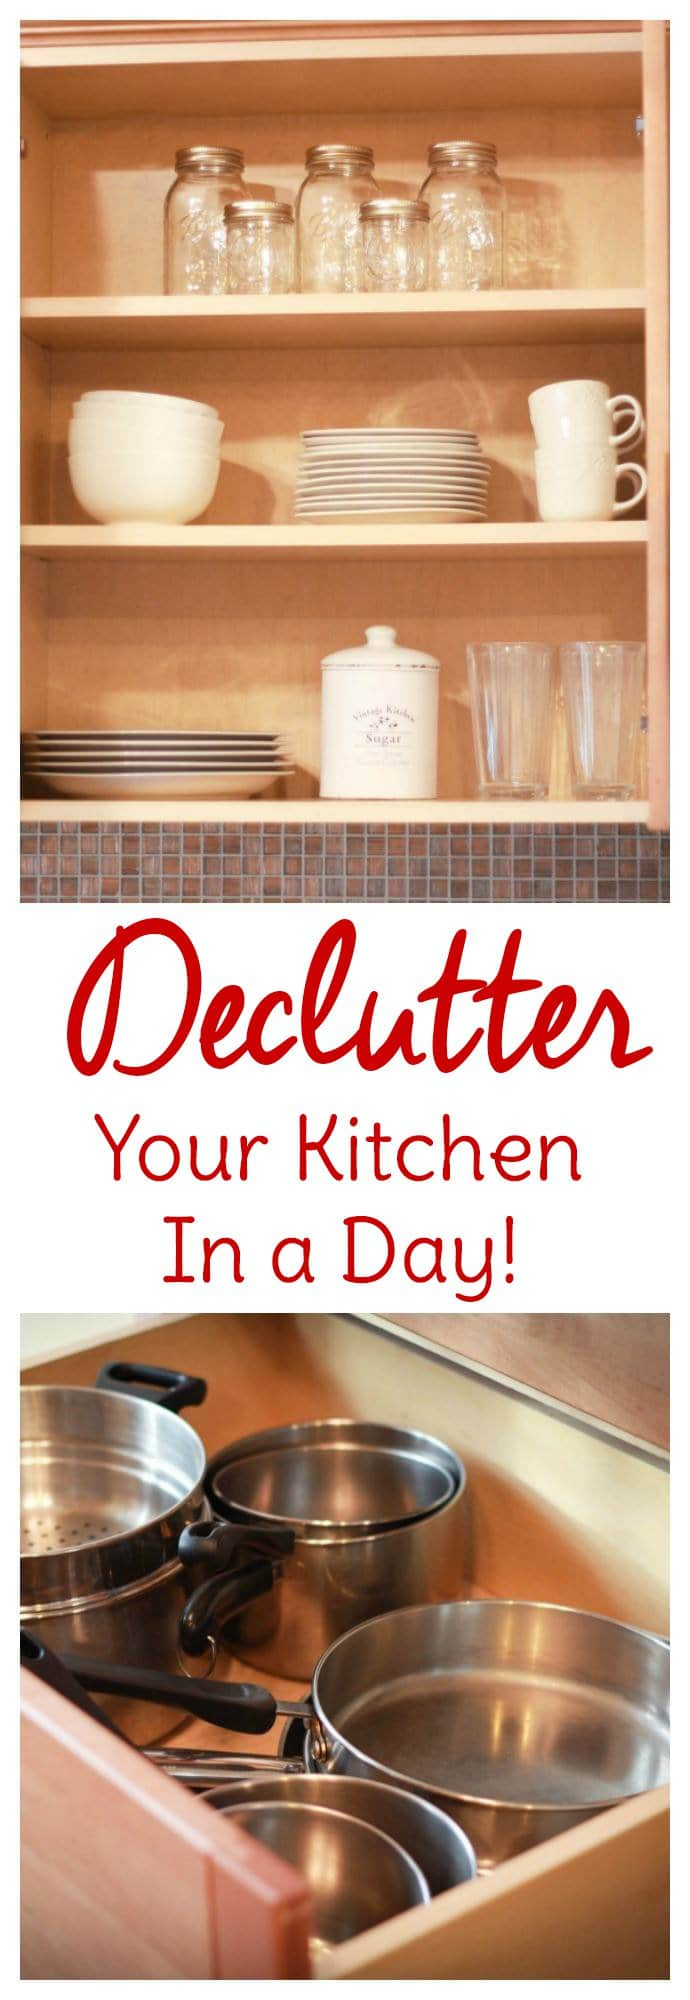 Kitchen organization begins with a kitchen declutter. Find out ways to declutter your kitchen in a day with this step-by-step process.